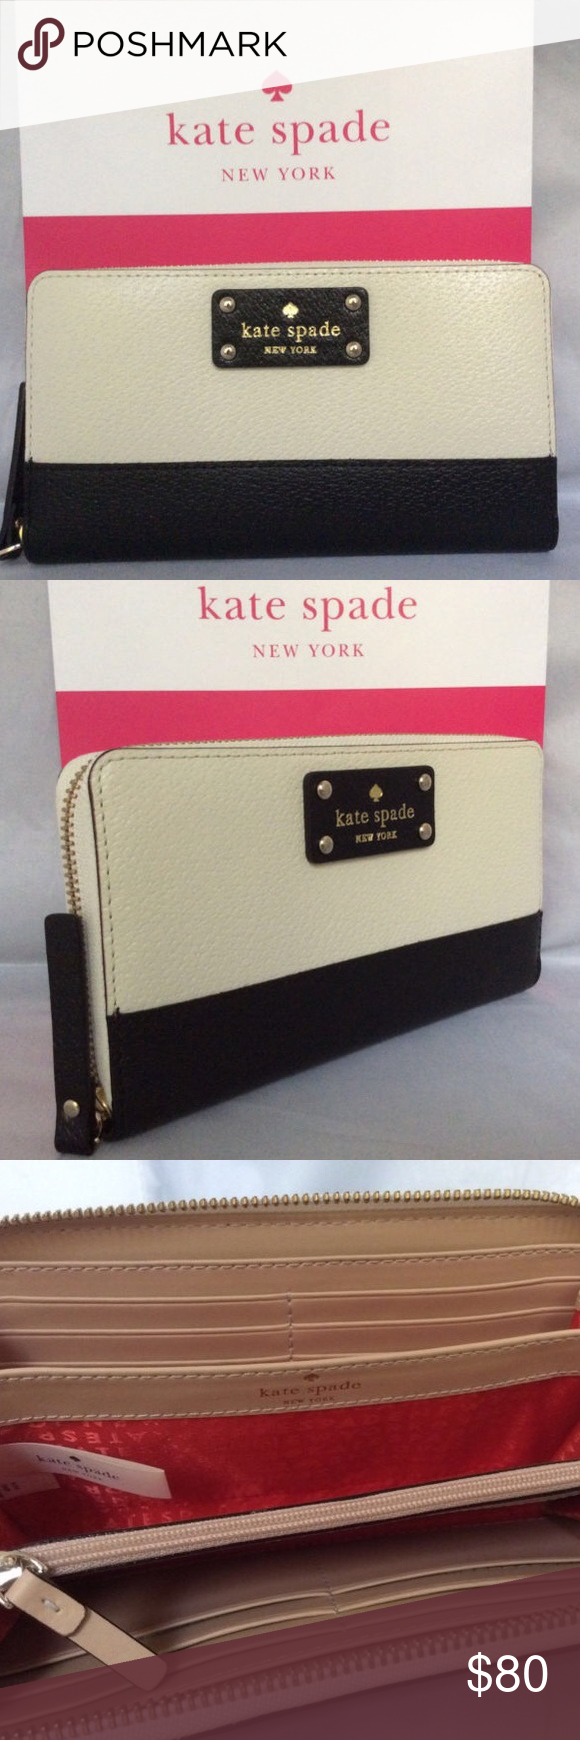 Kate Spade Berkeley Zip Wallet Used a few time, excellent condition. Many credit card slots! kate spade Bags Wallets